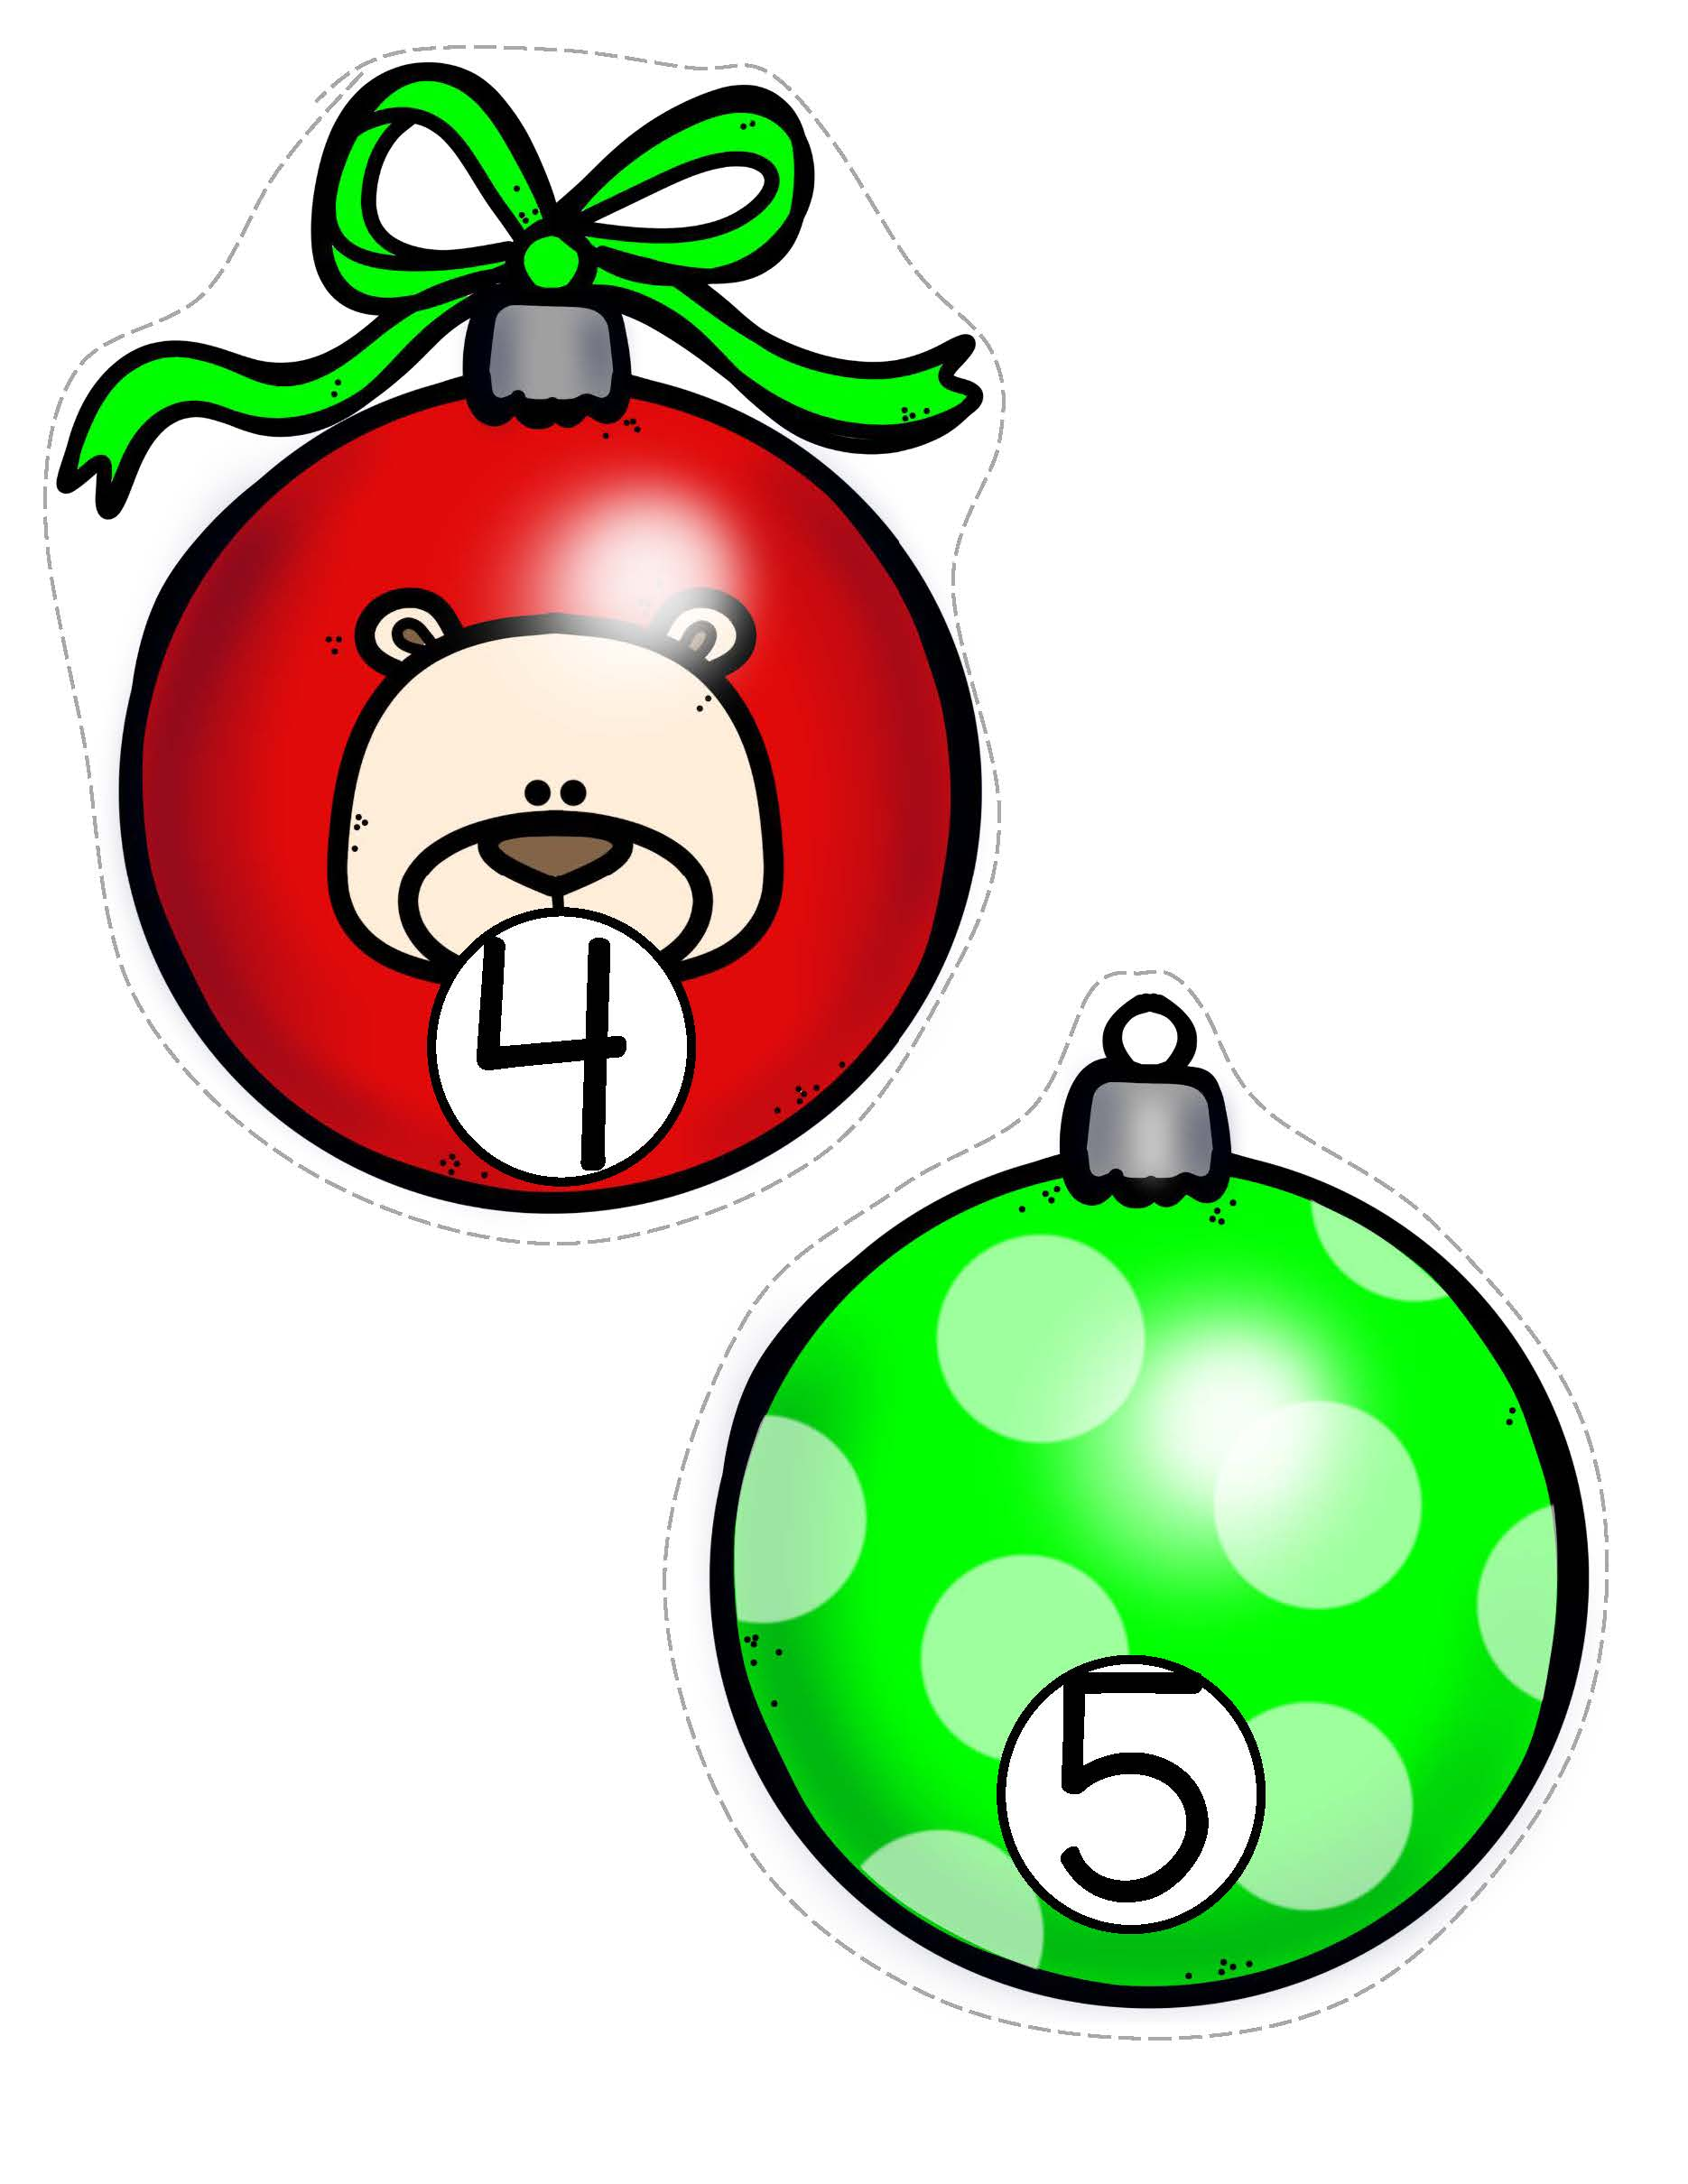 Christmas ornaments counting 0-20. Recognition, sequencing, number lines, matching etc.